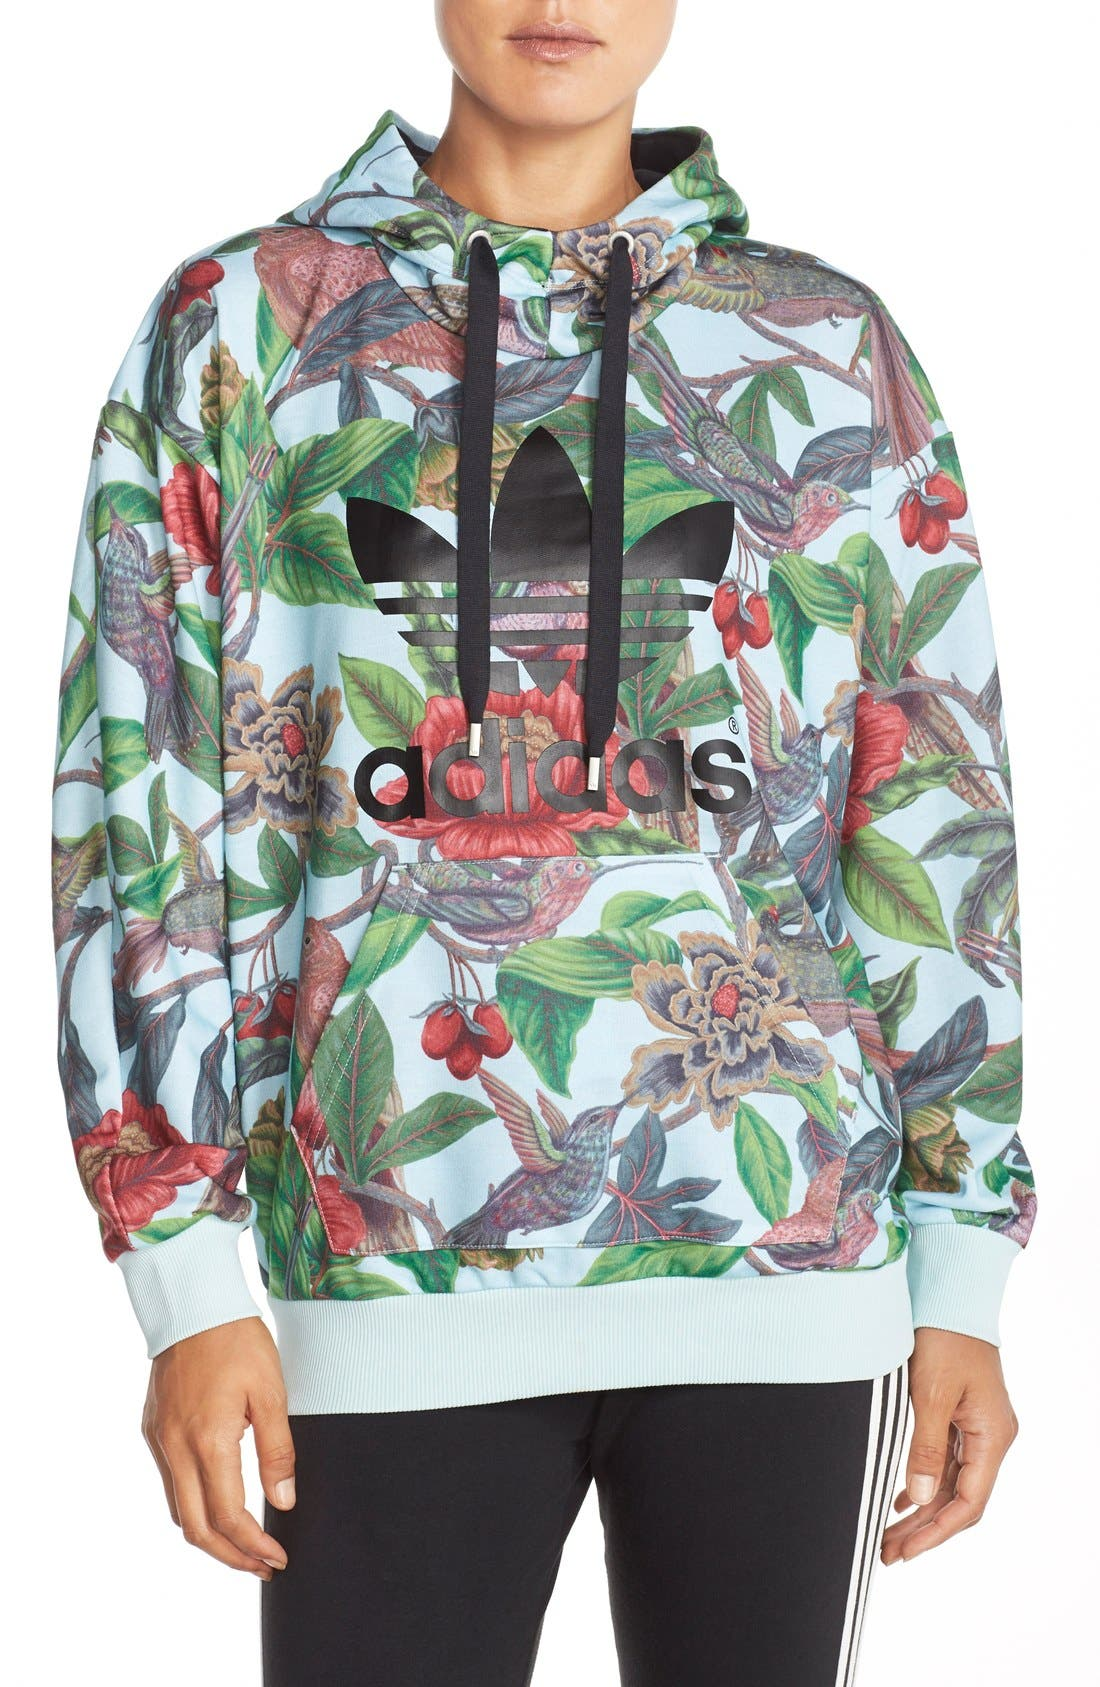 Alternate Image 1 Selected - adidas Originals 'Florera - Battle of the Birds' Hoodie